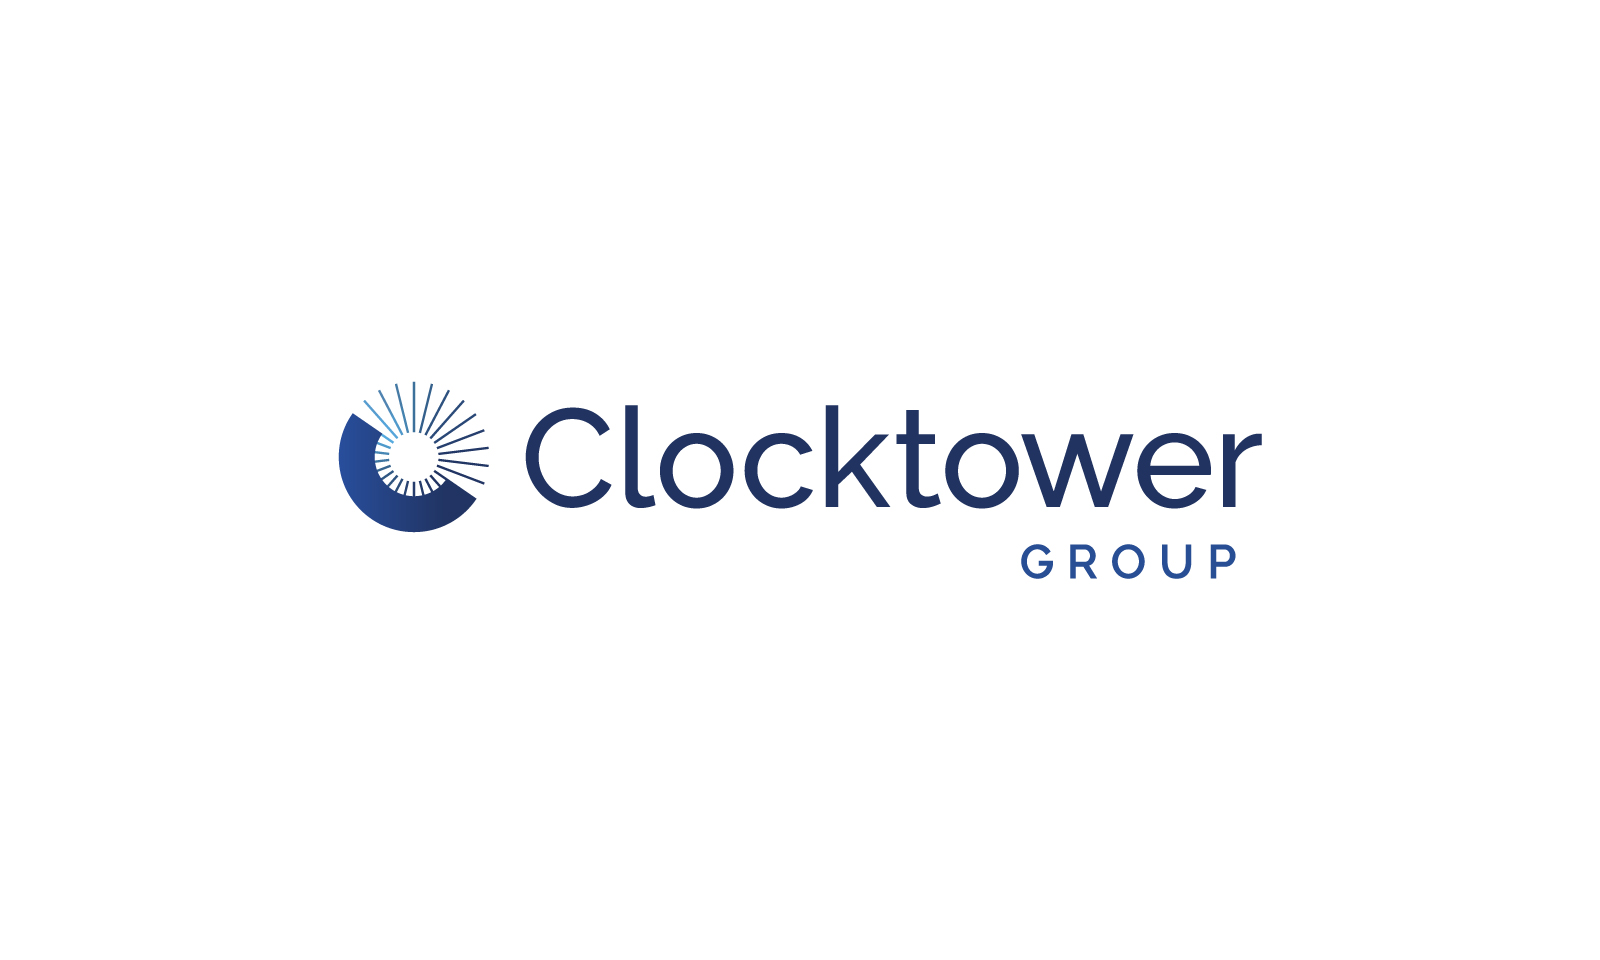 clocktower brand identity design corporate